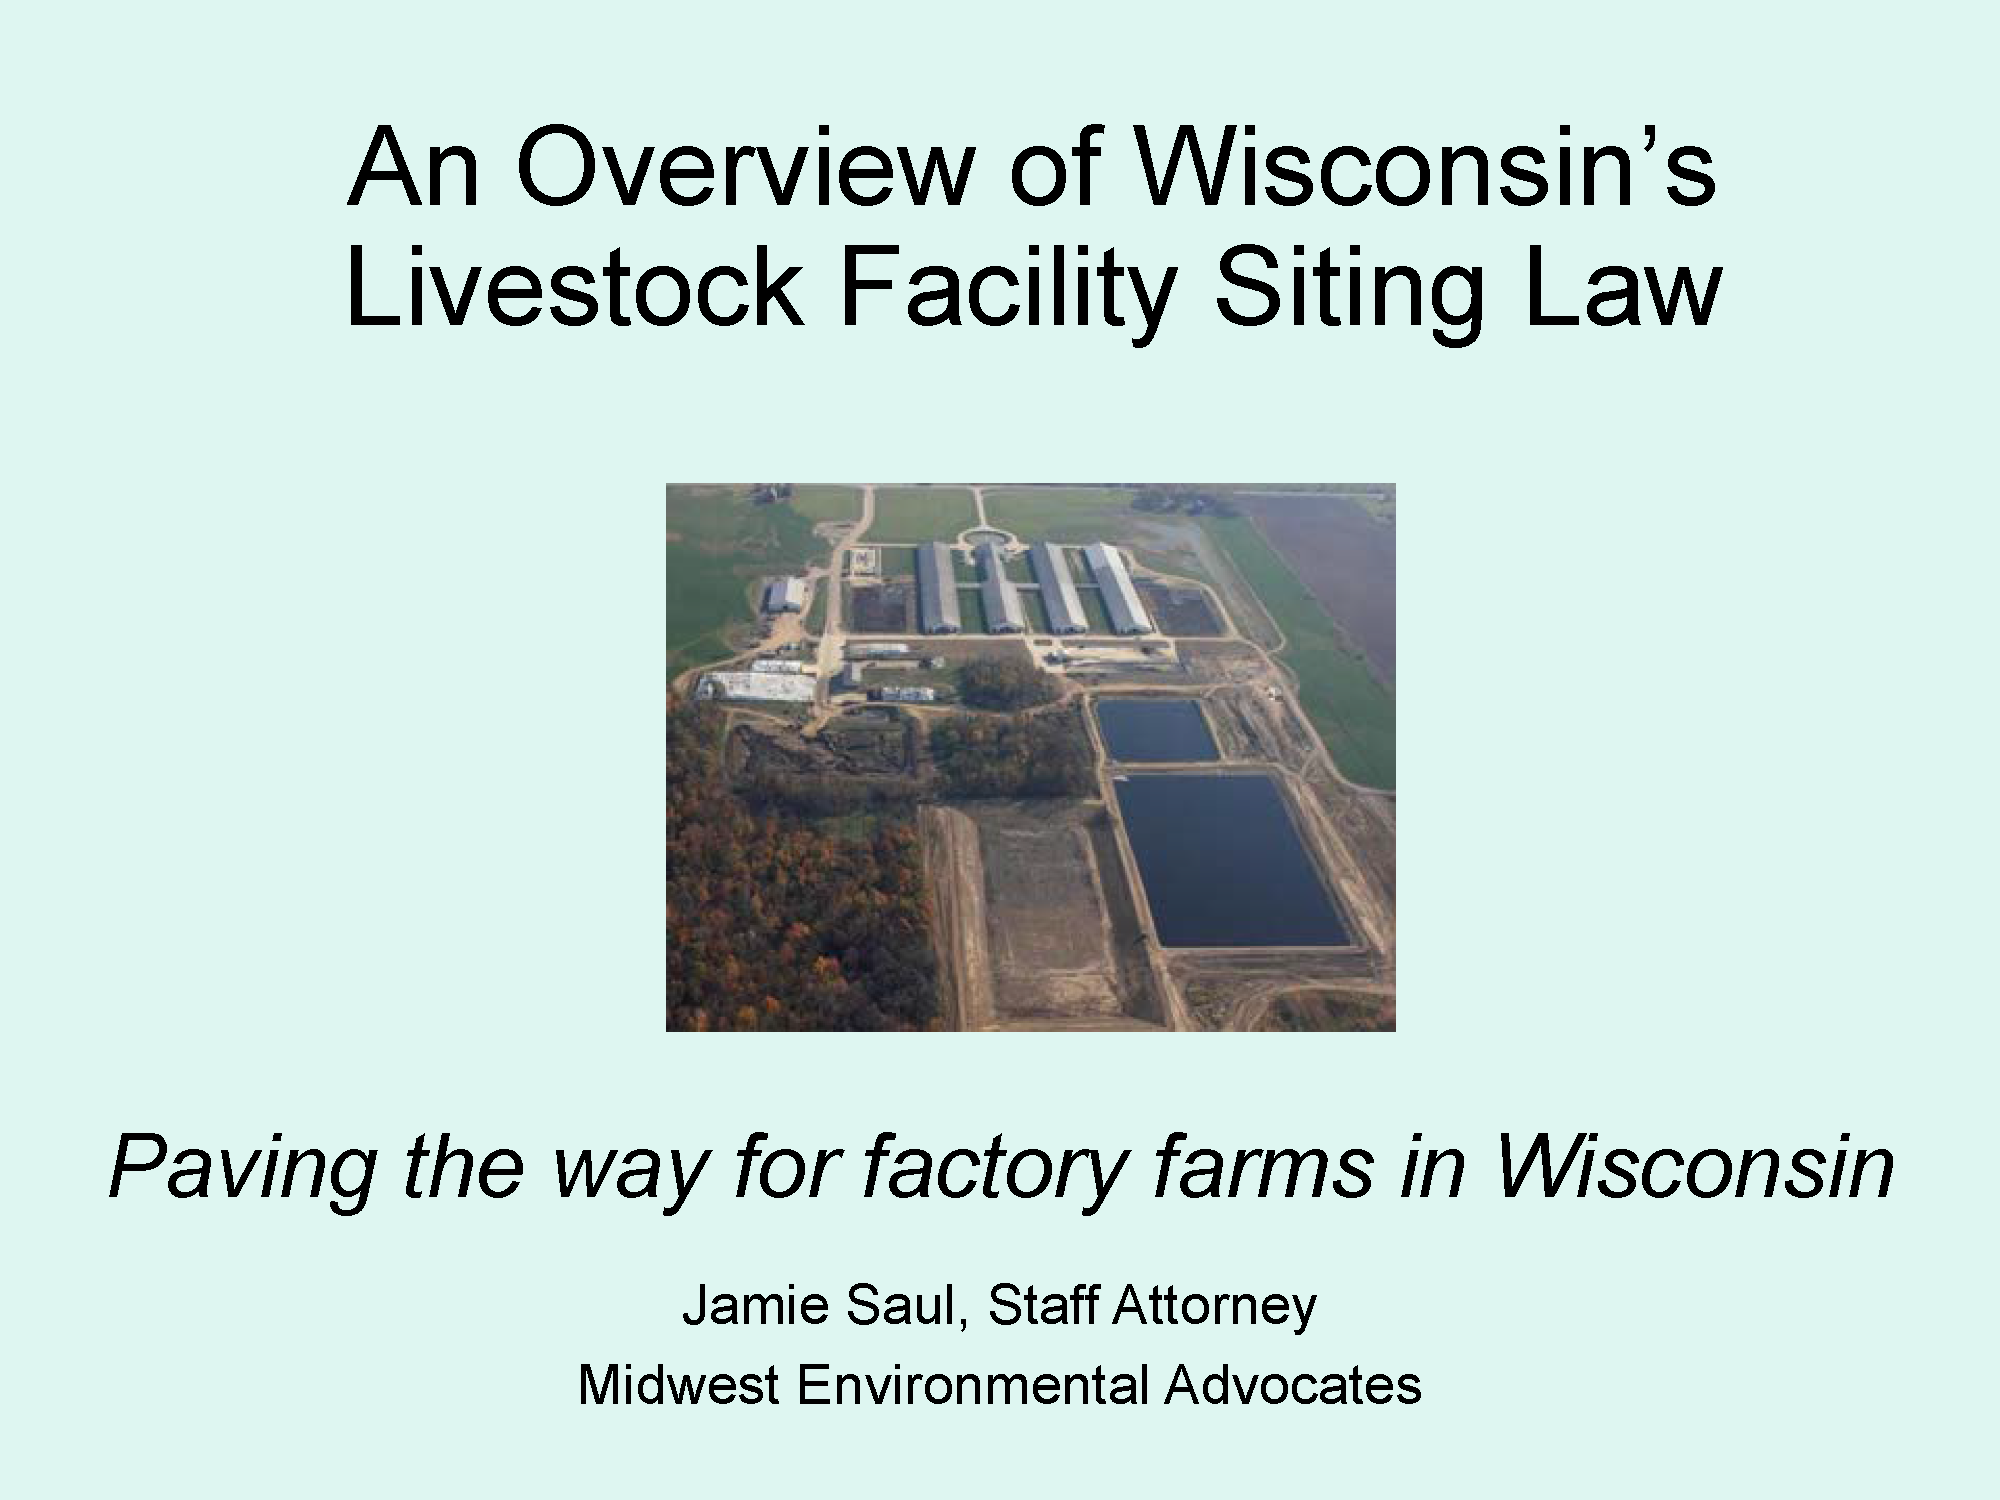 An_Overview_of_the_Livestock_Siting_Law_Page_01.png